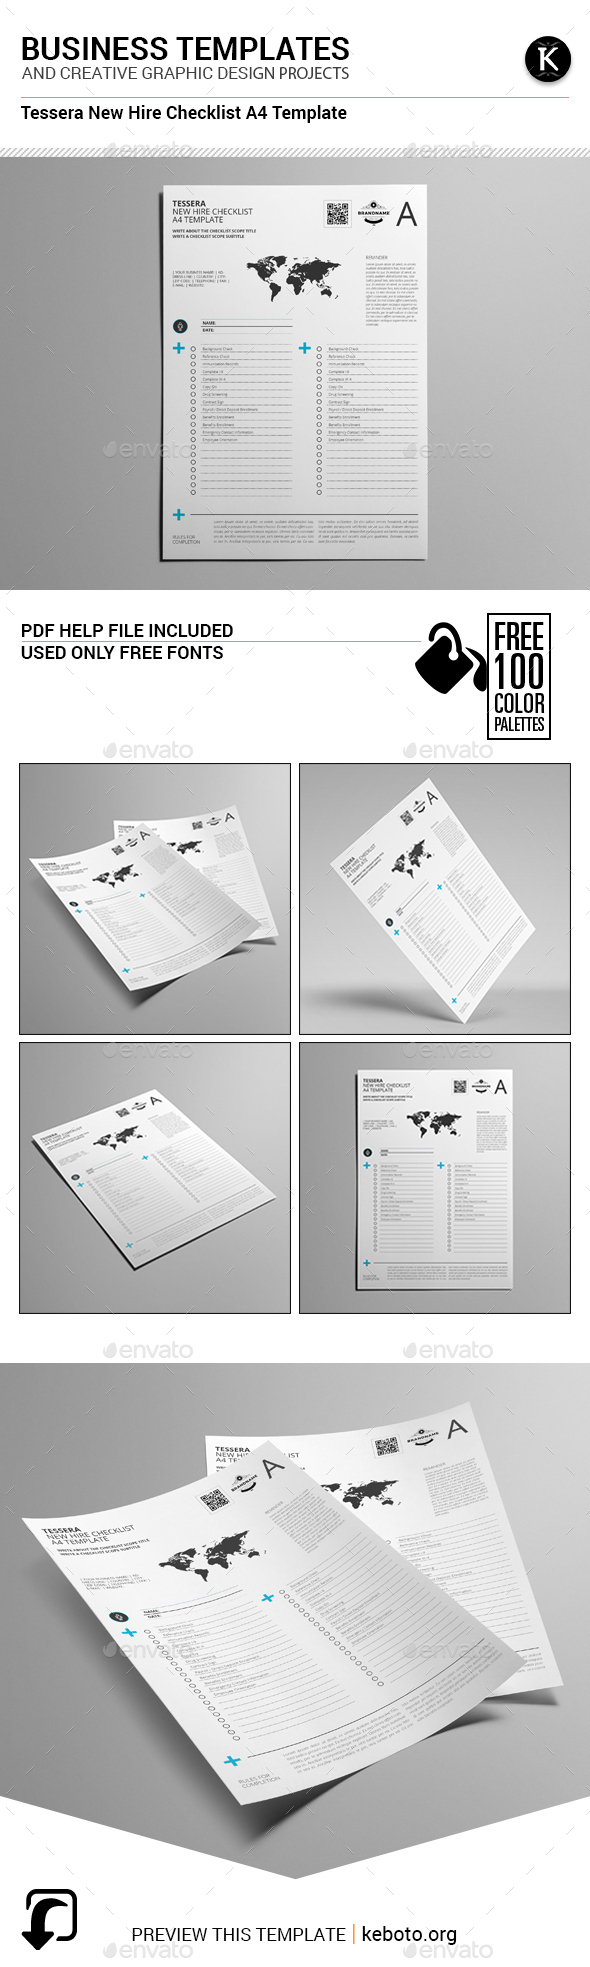 Tessera New Hire Checklist A4 Template - Miscellaneous Print Templates